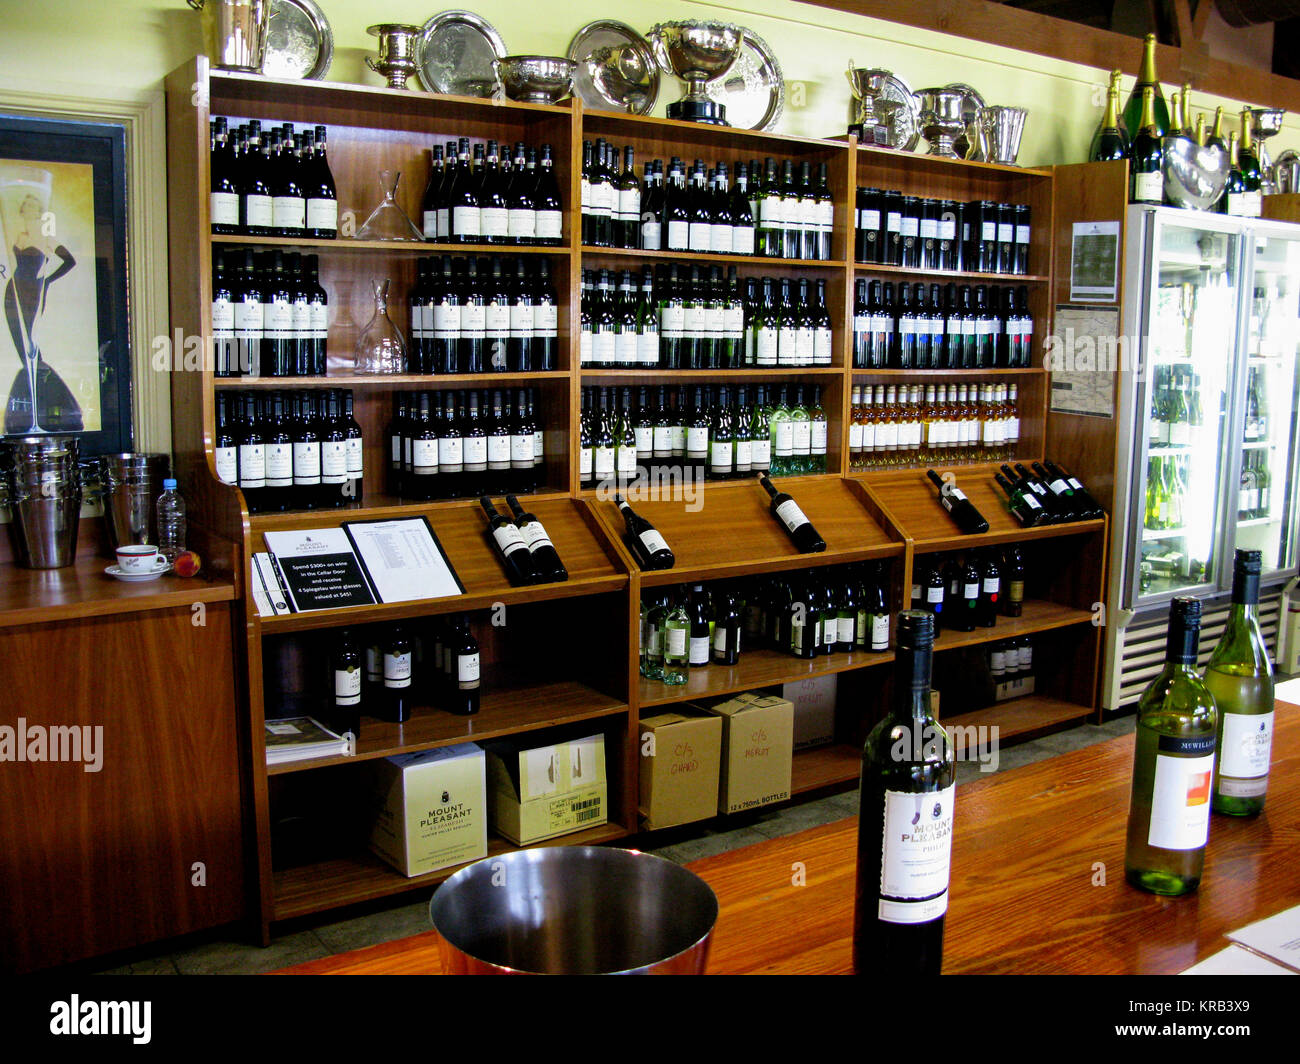 HUNTER VALLEY Mount Pleasants Vineyrad shop for sale to tourists 2009 - Stock Image